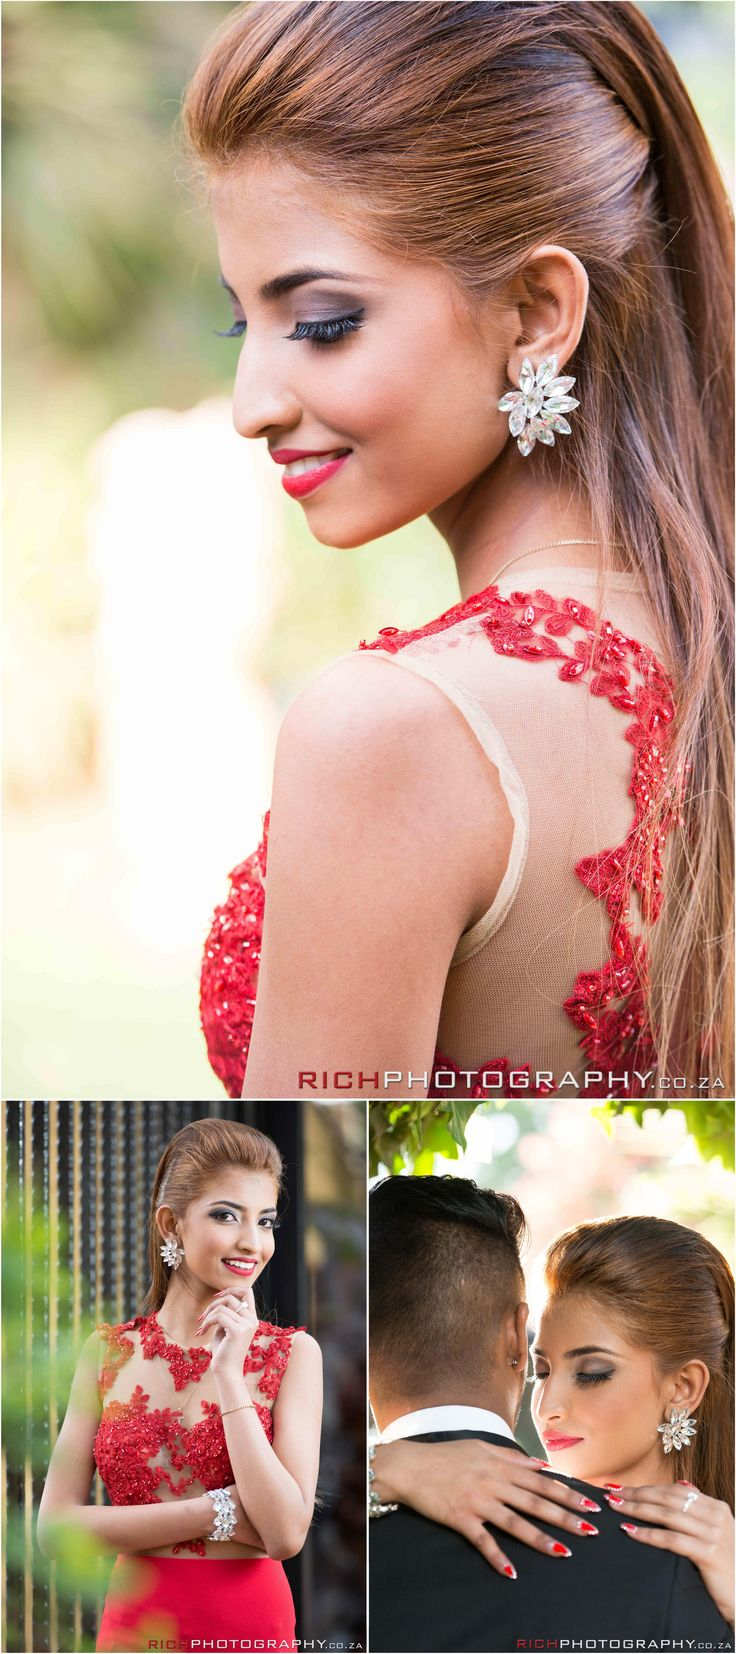 Some beautiful poses and matric farewell ideas for those planning their farewell and wanting to be inspired #matricfarewell #reddress #elegant  Photography by RICH Photography